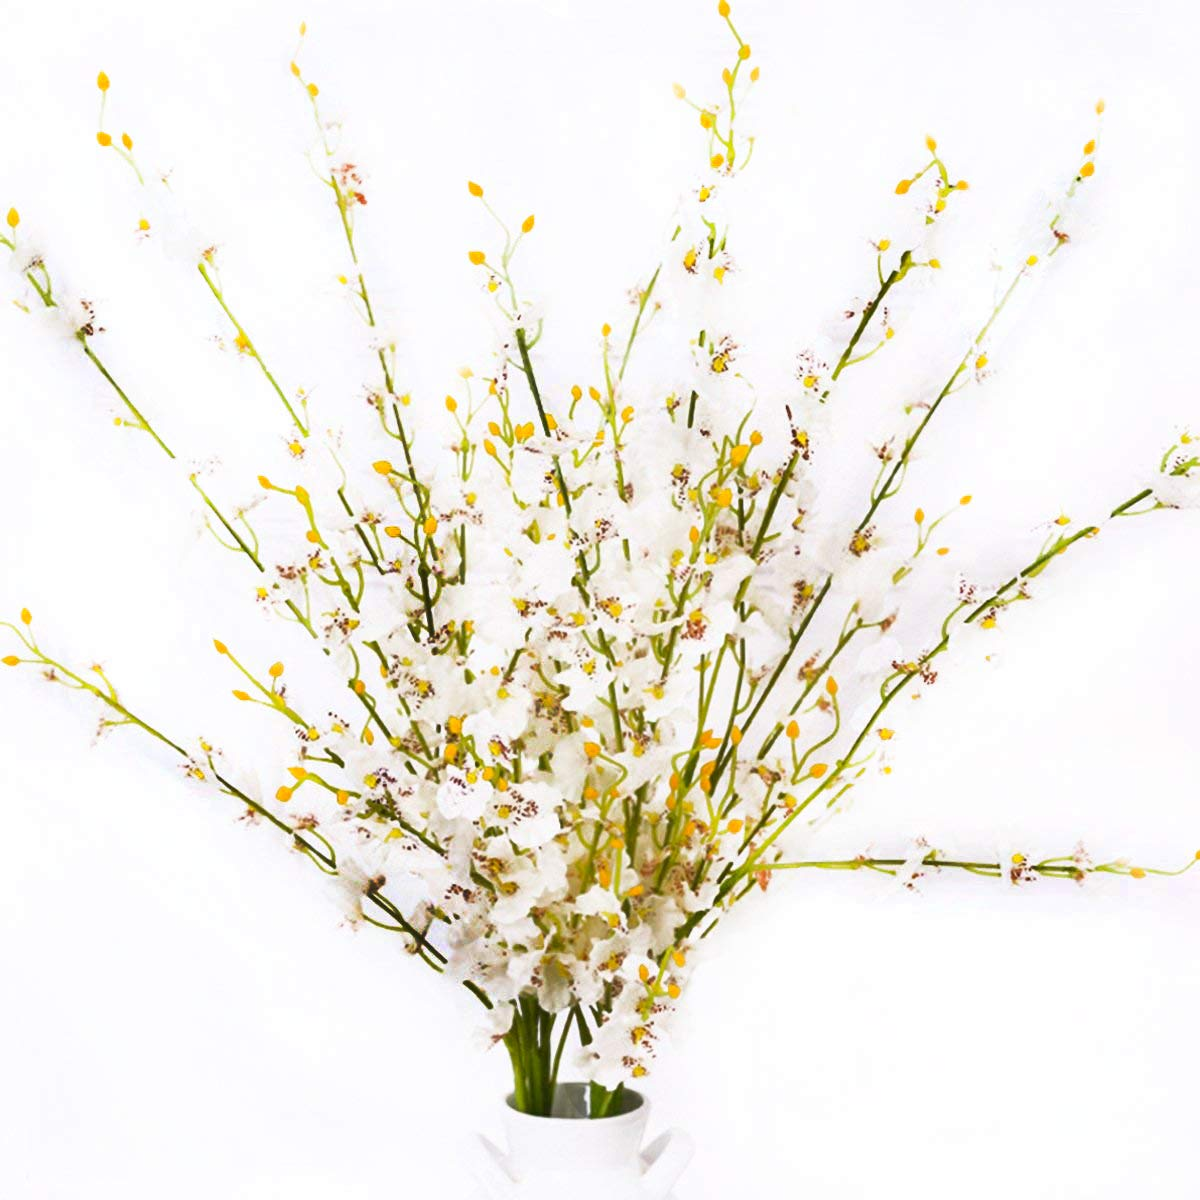 MISSWARM-10-Pieces-377-Long-of-Orchid-Dancing-Lady-Butterfly-Artificial-Flower-Artificial-Flowers-Fake-Flower-for-Wedding-Home-Office-Party-Hotel-Restaurant-Patio-or-Yard-DecorationWhite